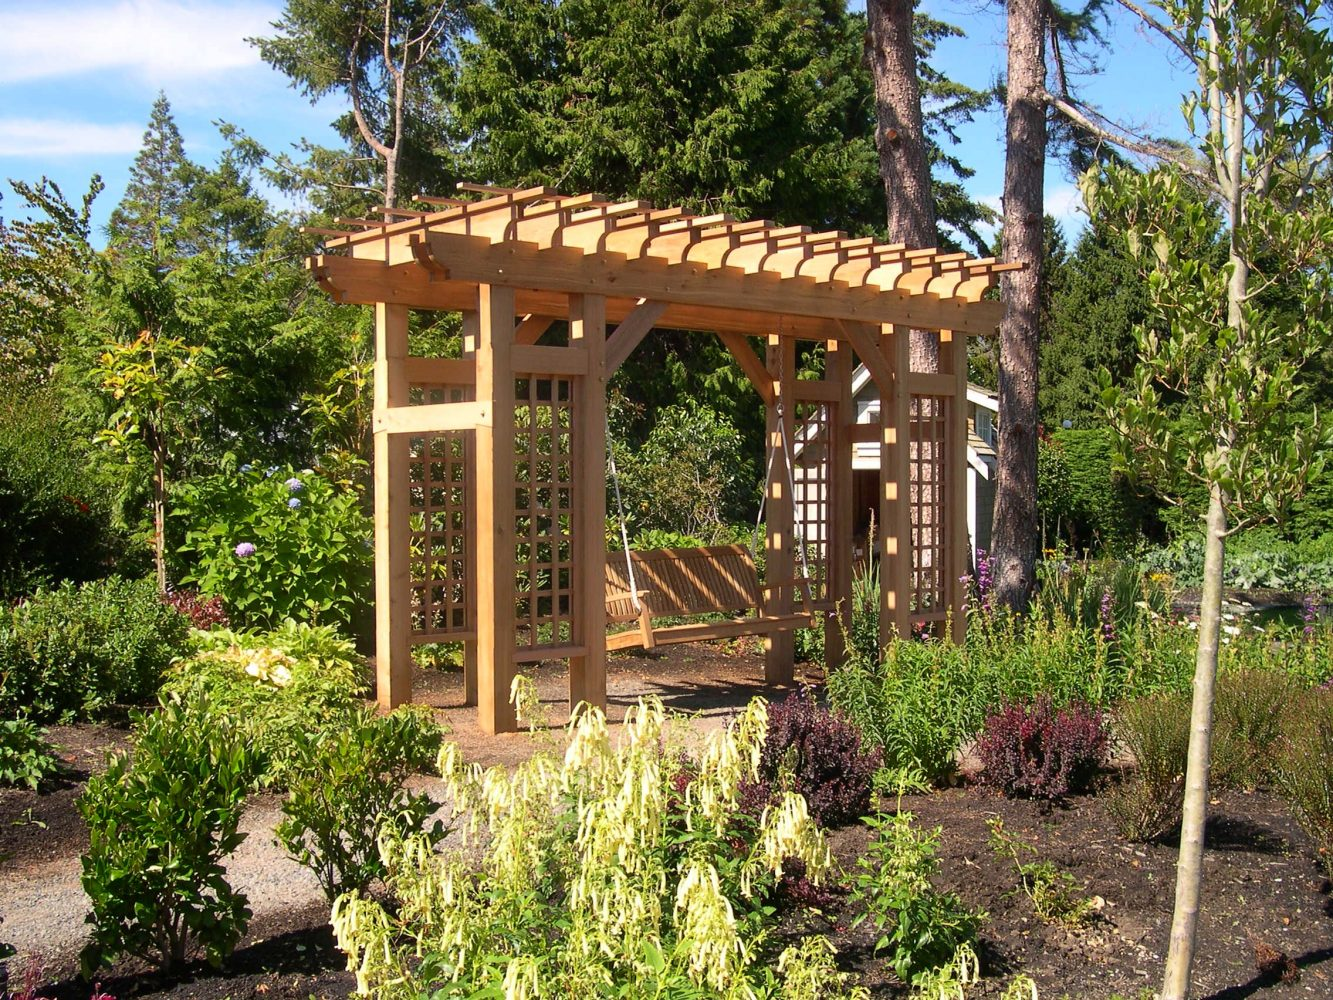 Cedar Garden arbour with swing